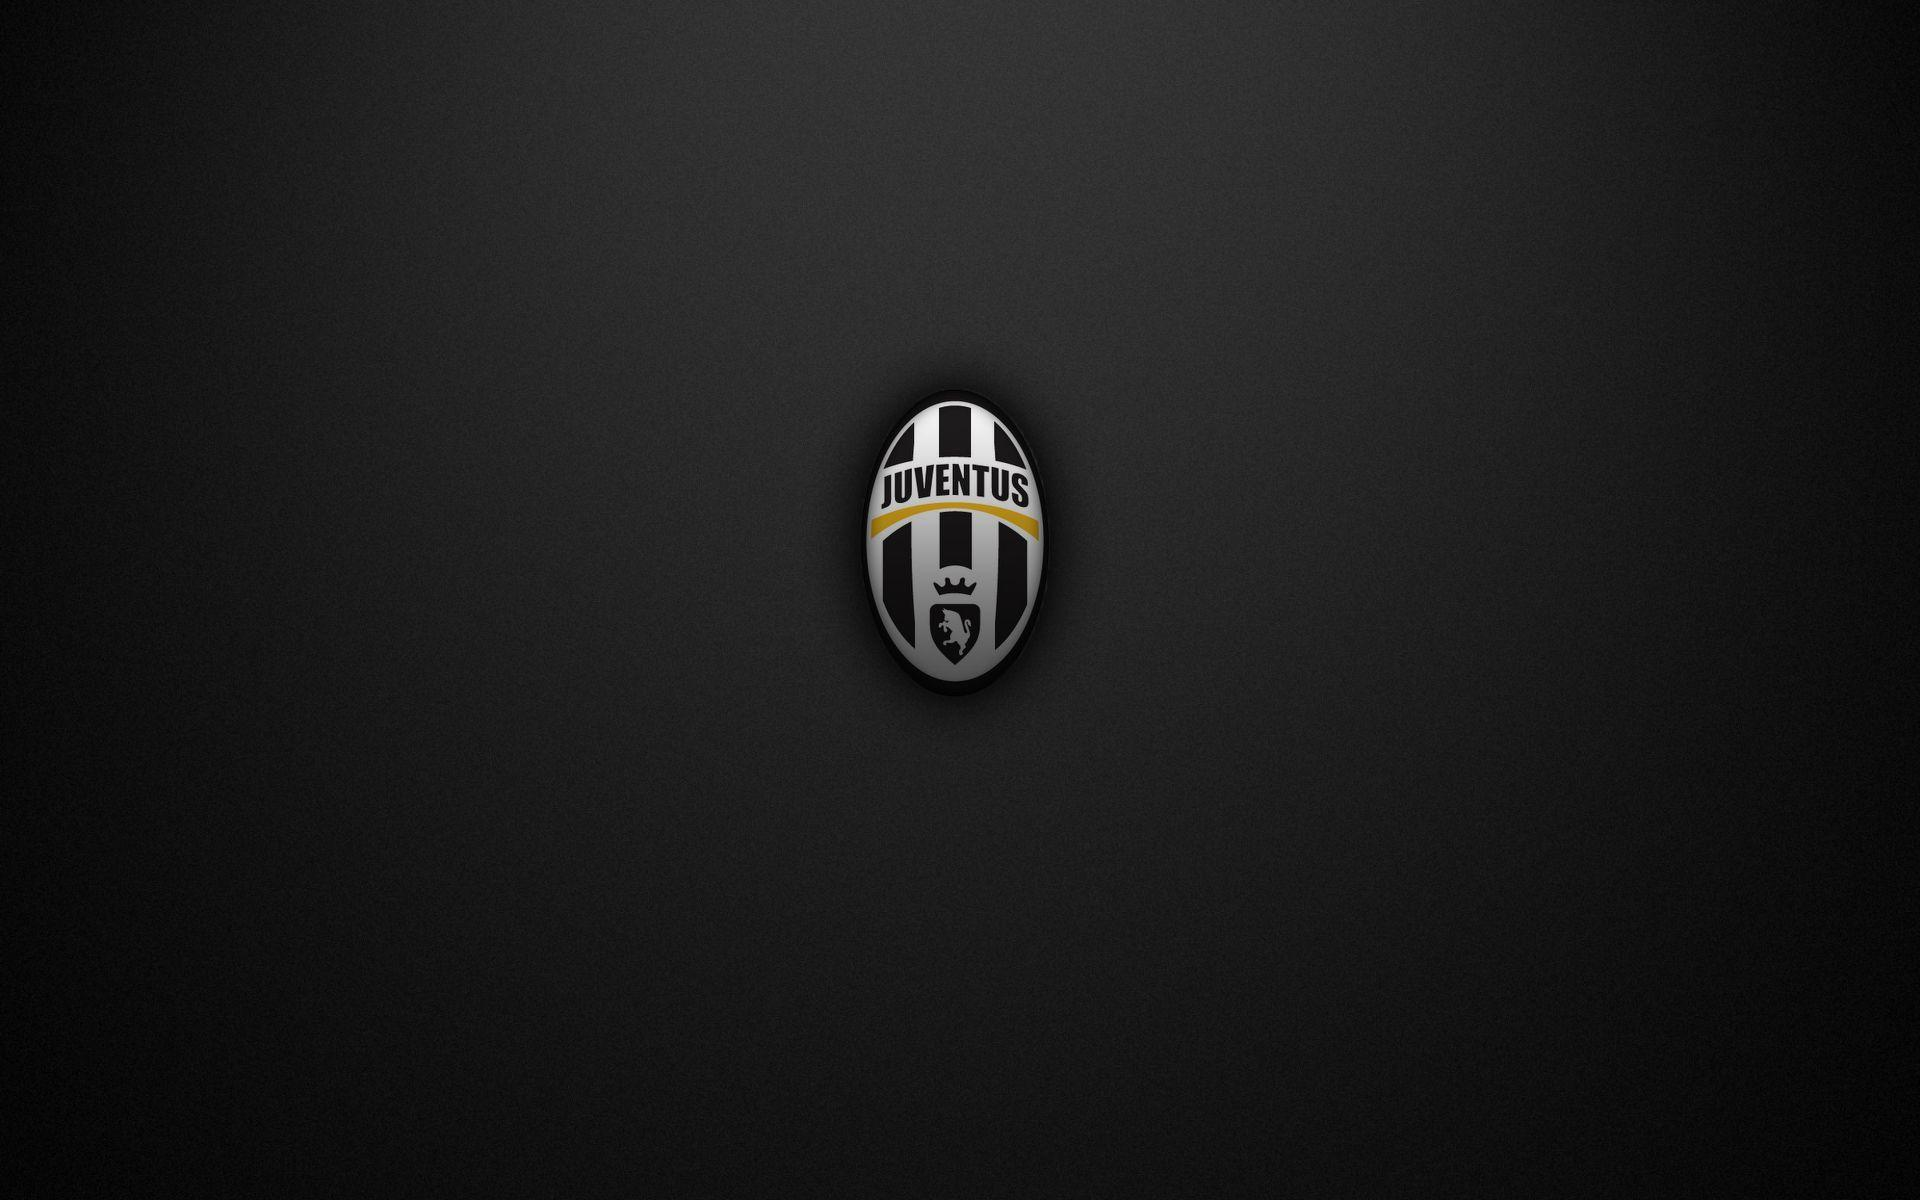 Juventus FC Club Wallpapers HD Wallpapers